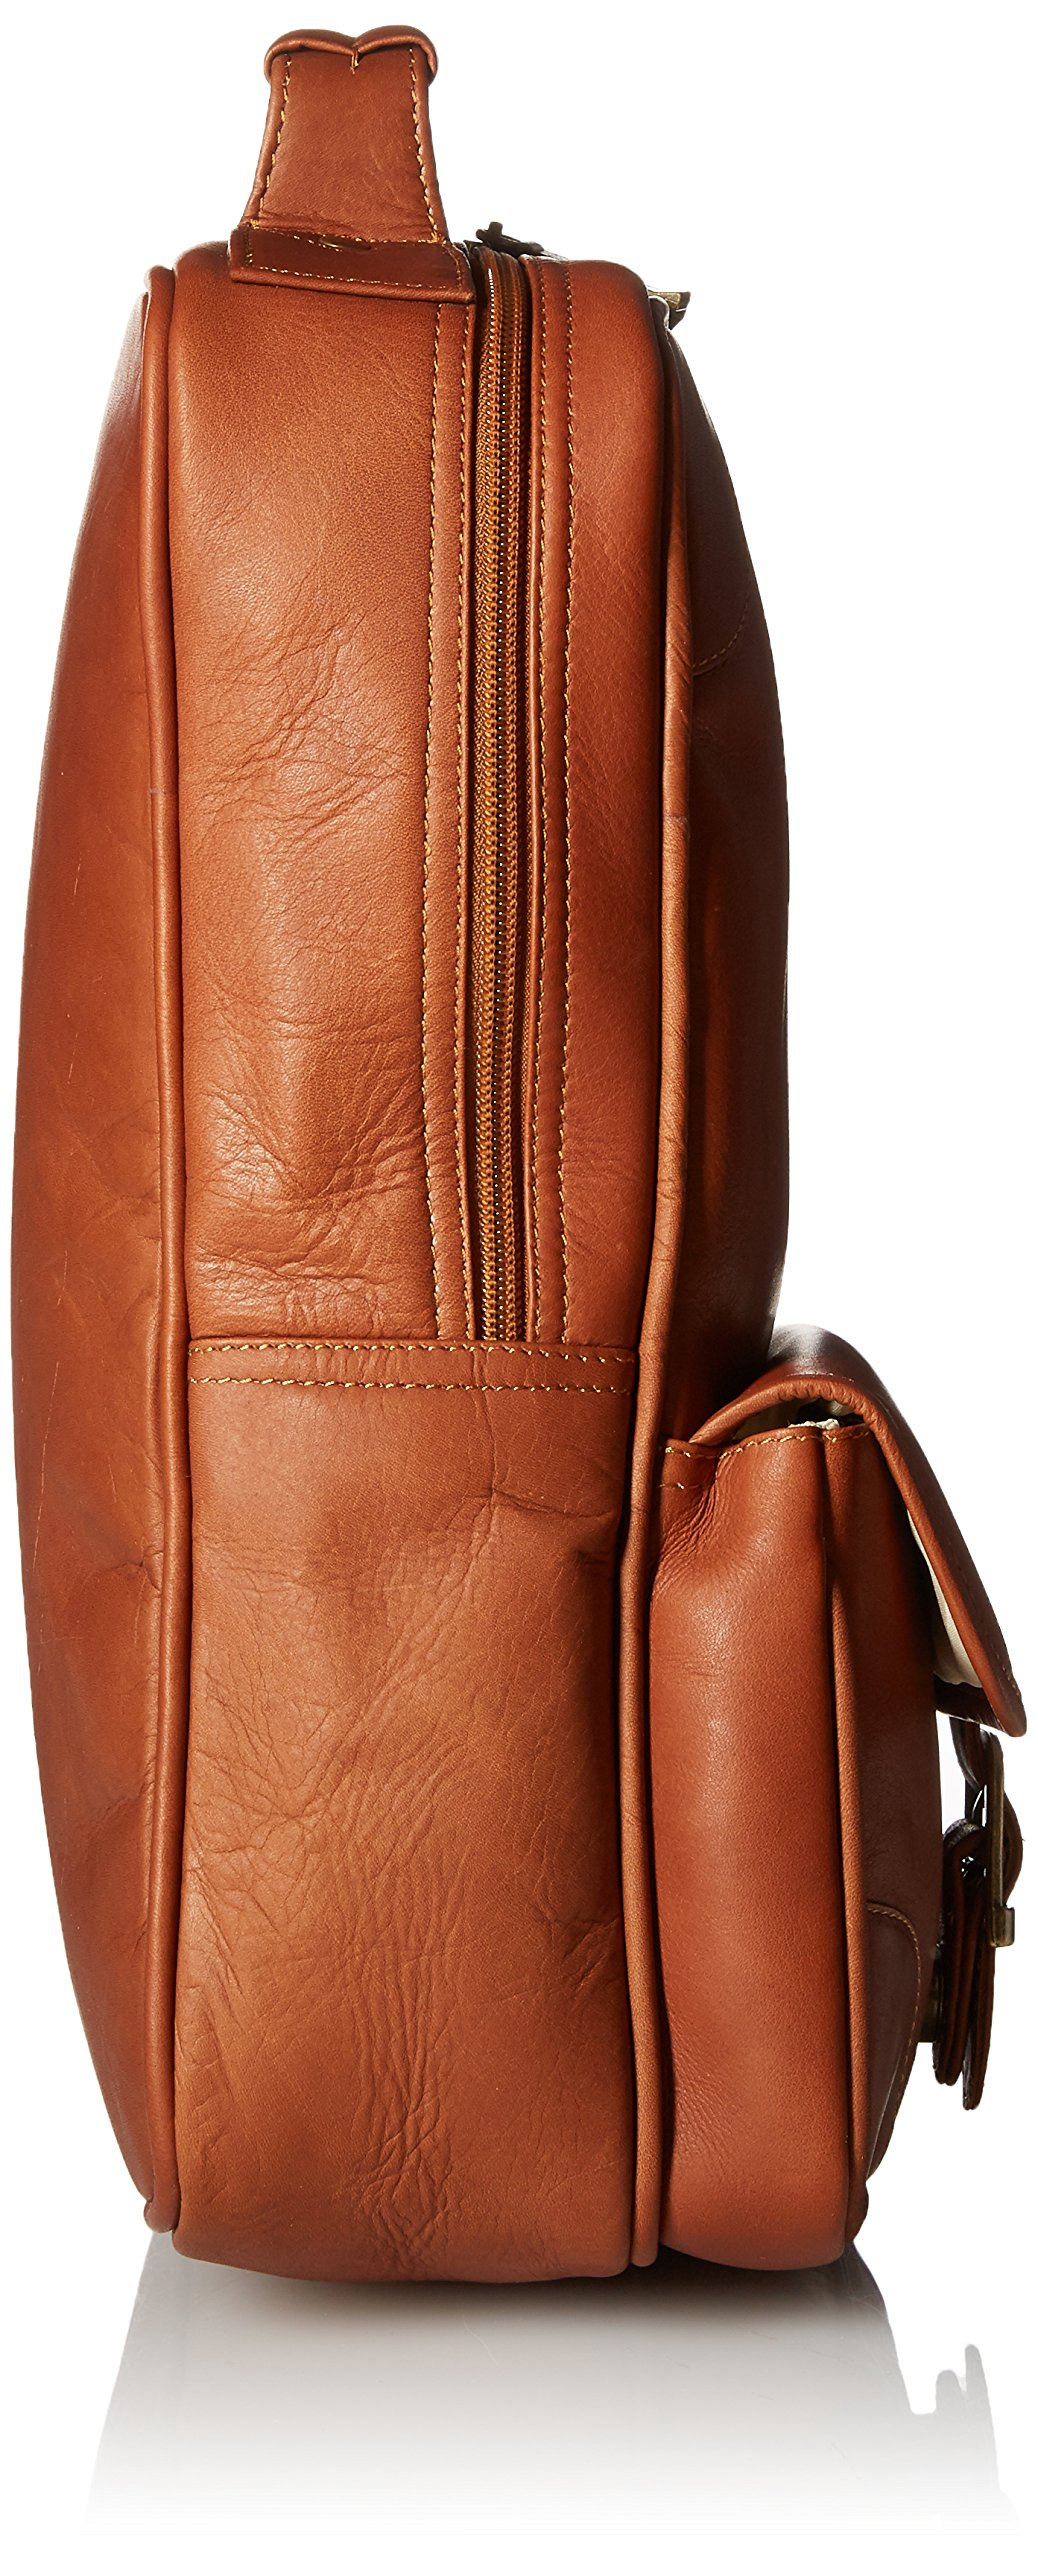 Claire Chase Upright Golf Shoe Bag, Saddle by ClaireChase (Image #3)